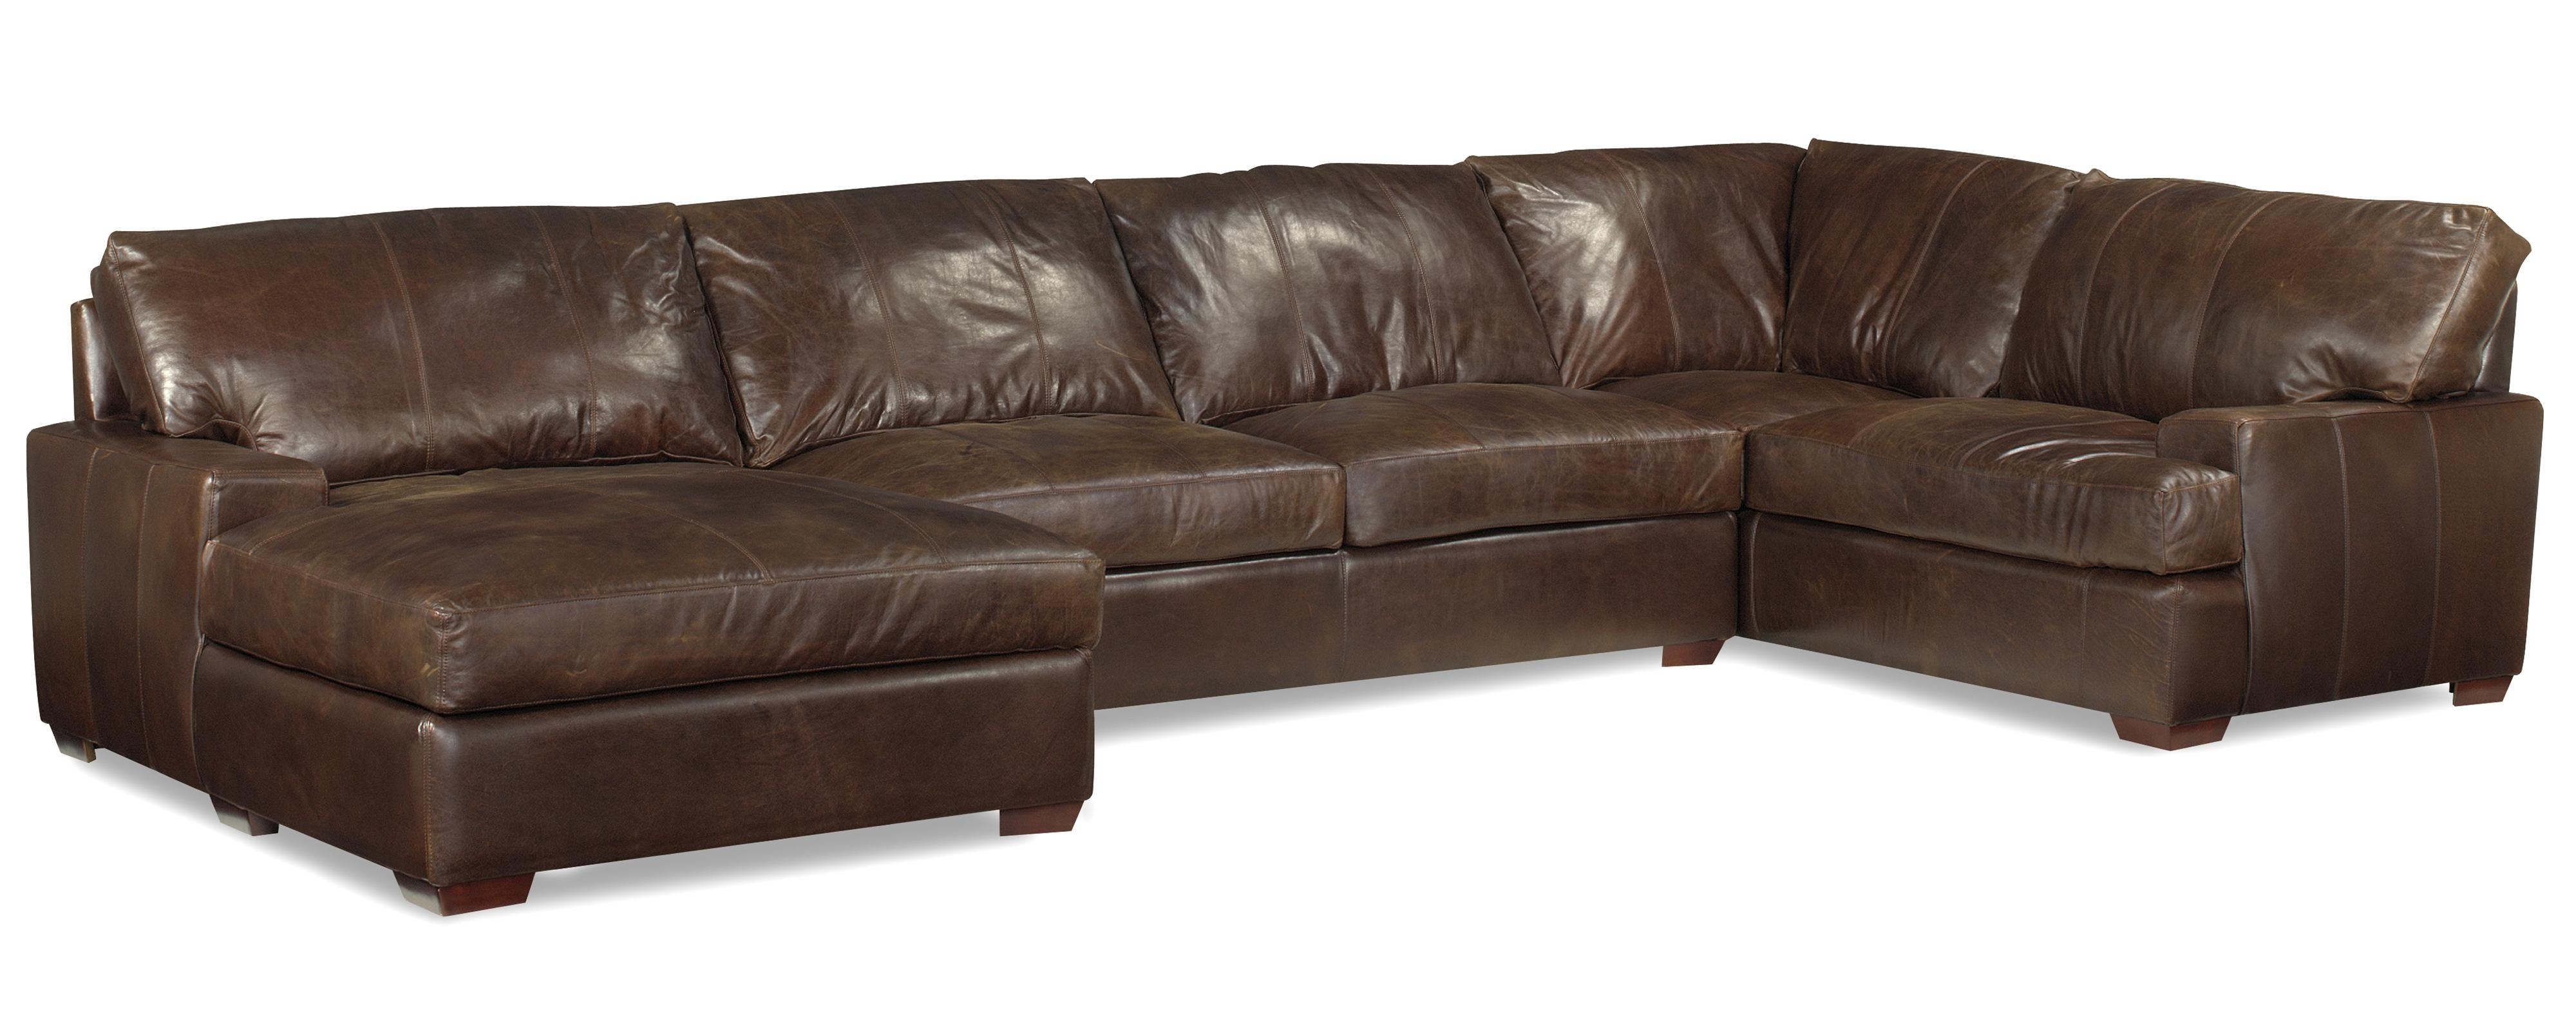 Recent Leather Sofa Chaises Within Usa Premium Leather 3635 Track Arm Sofa Chaise Sectional W/ Block (View 15 of 15)